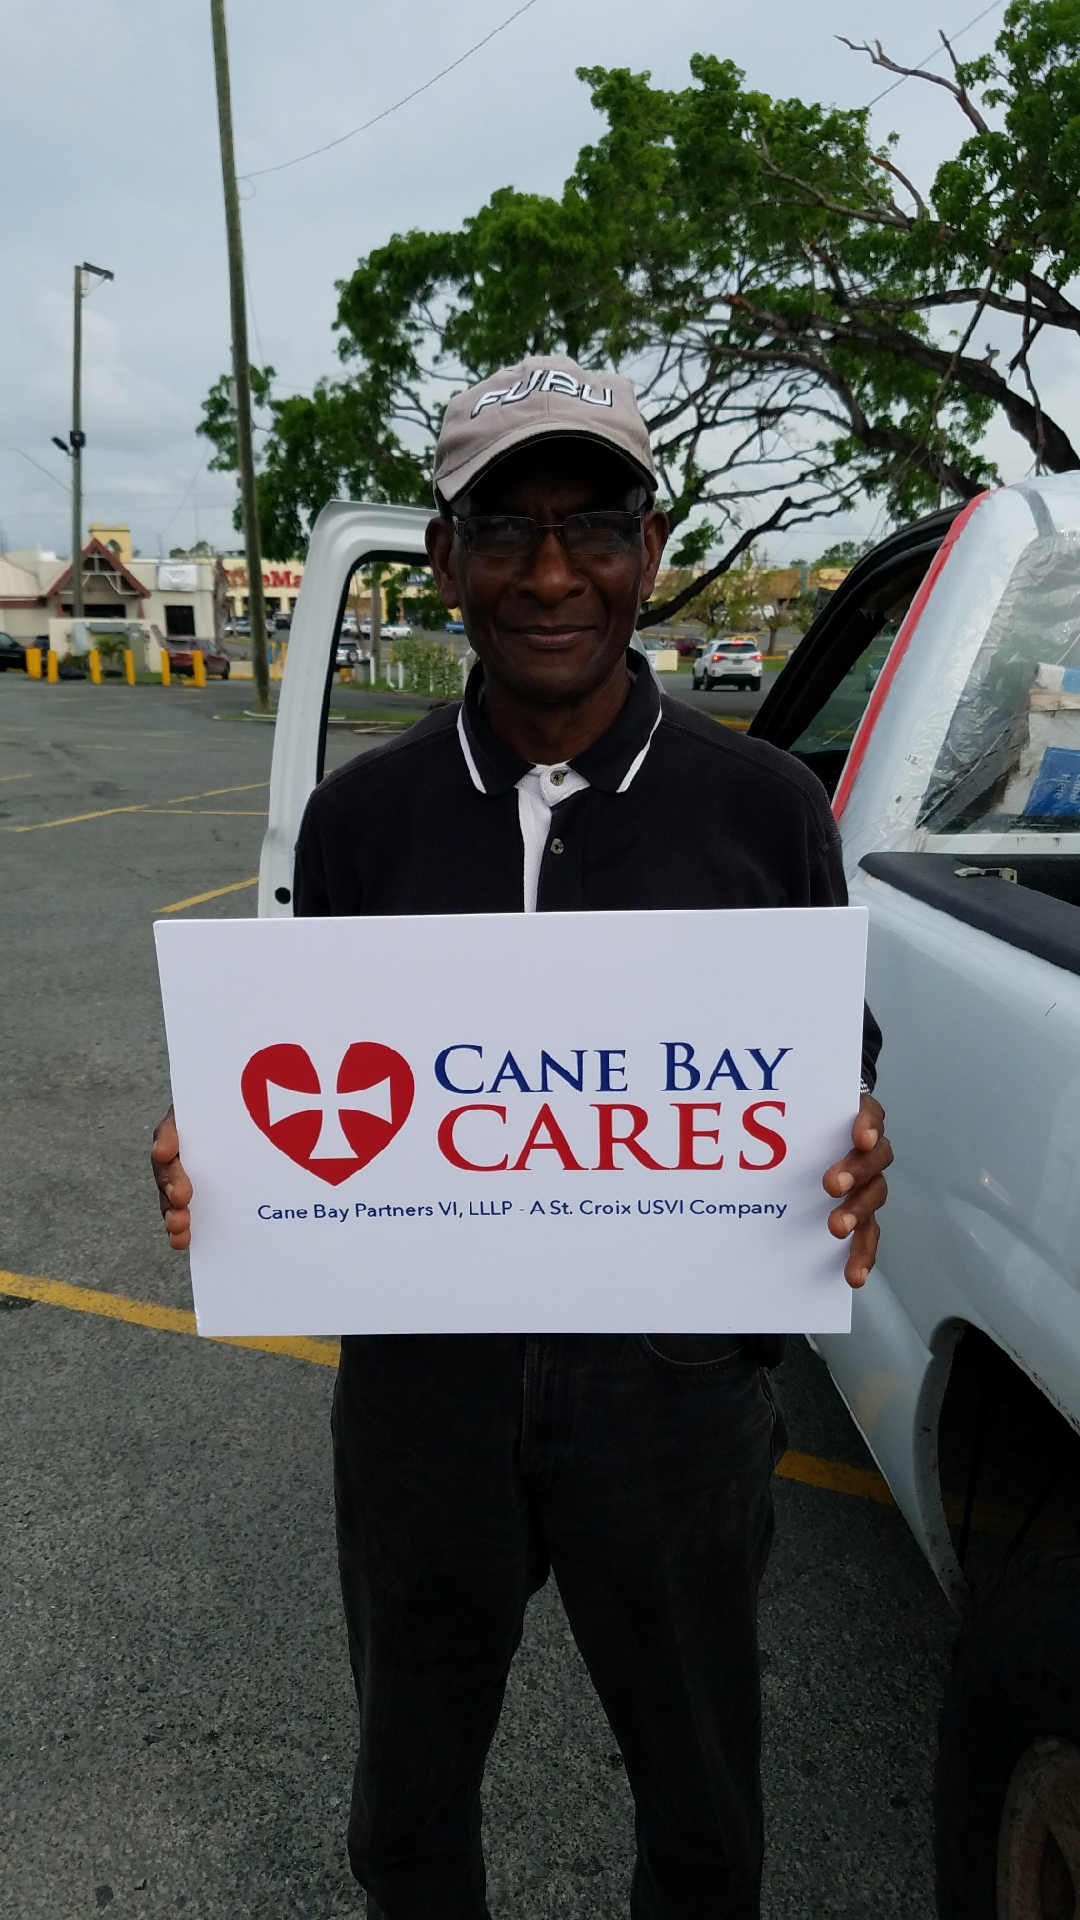 Cane Bay Cares Delivered 36 Generators To Schools, Churches And Community Organizations After Hurricane Maria Wipe Out Power On St. Croix.